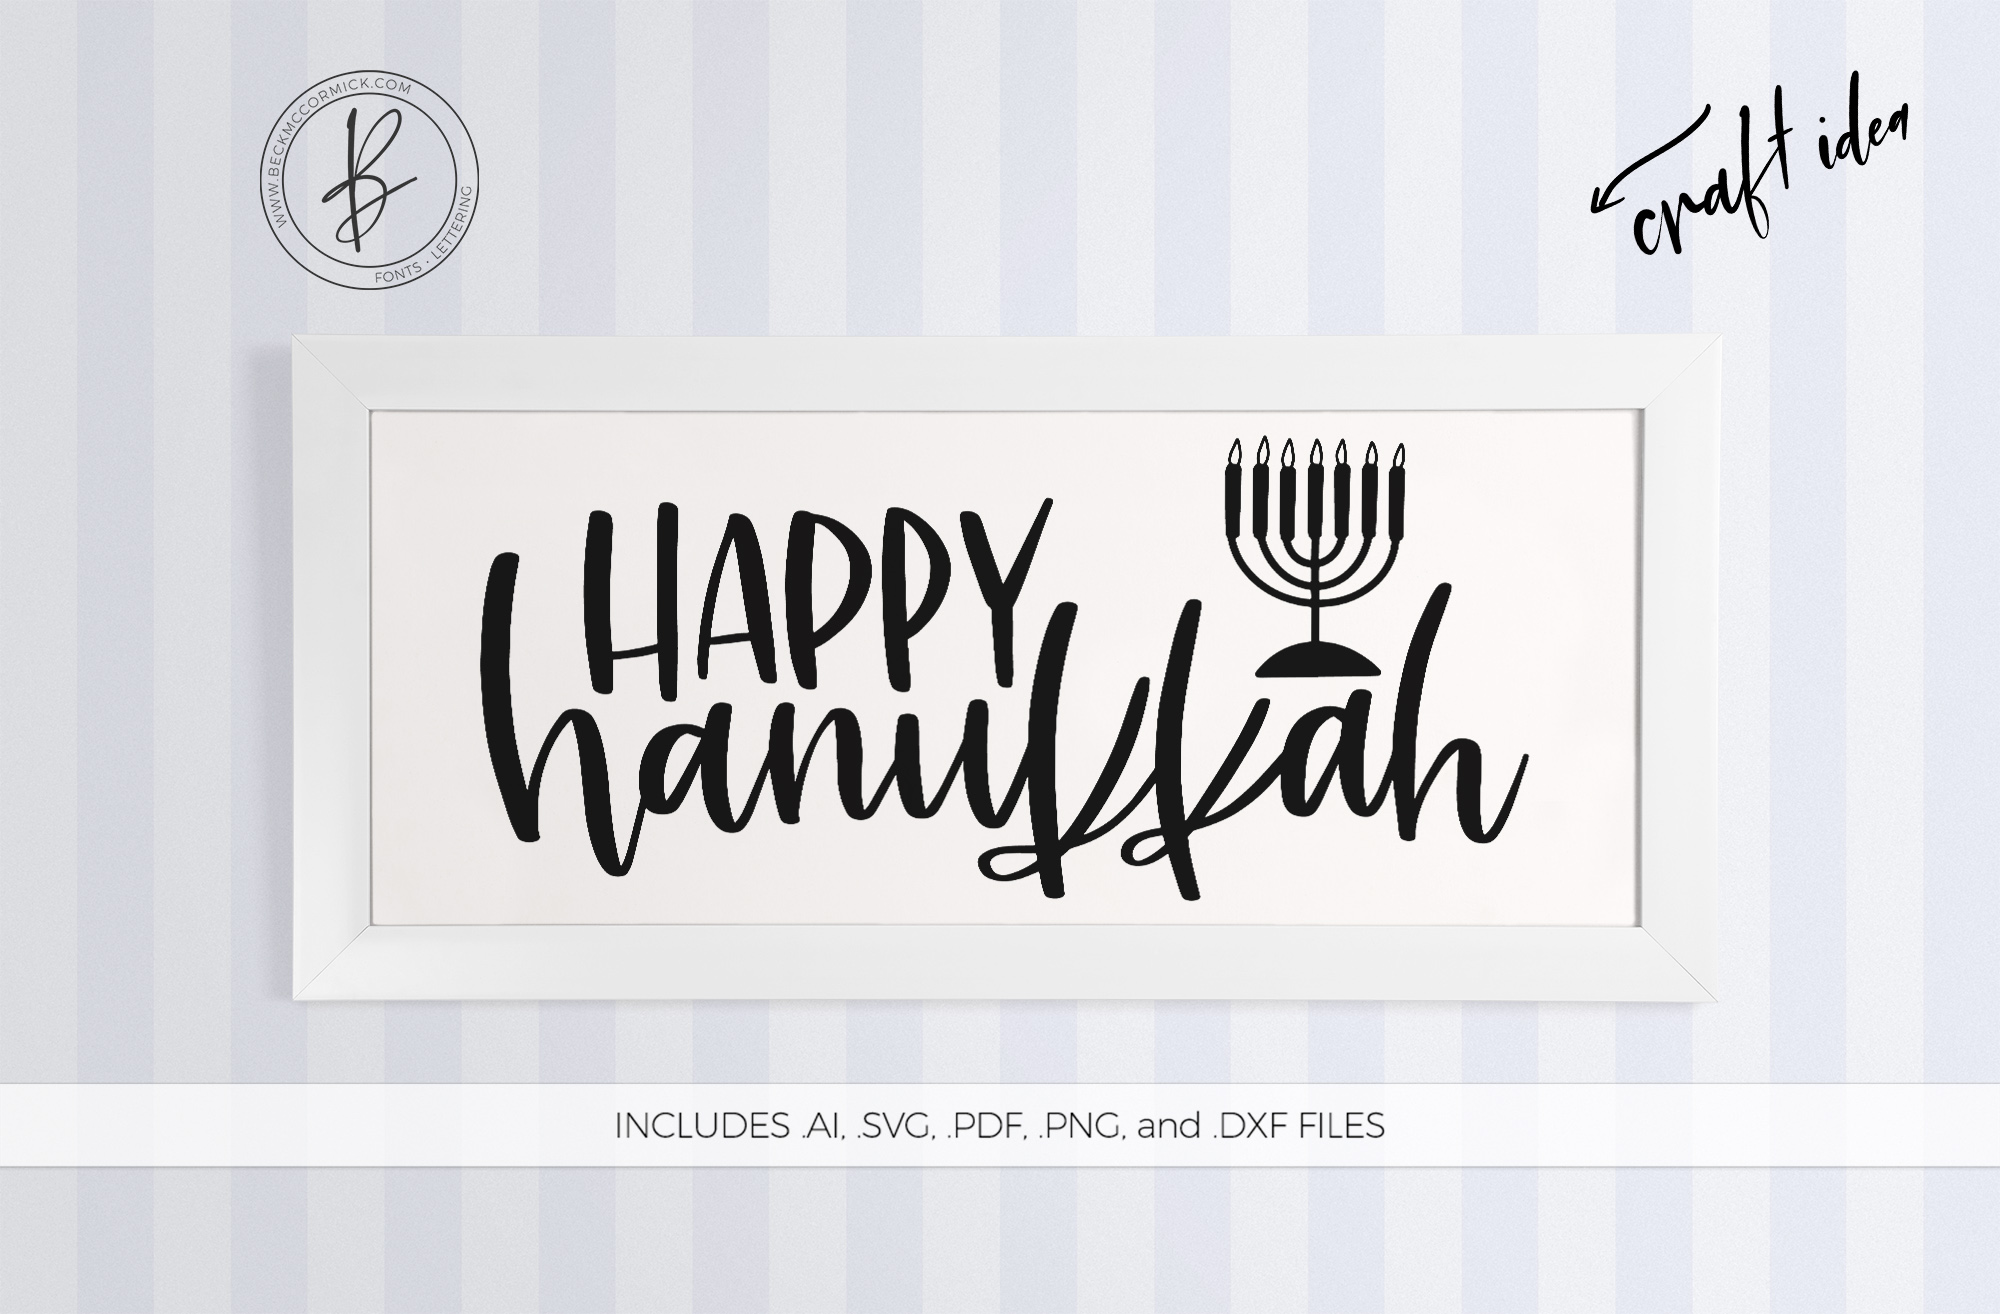 Download Free Happy Hanukkah Graphic By Beckmccormick Creative Fabrica for Cricut Explore, Silhouette and other cutting machines.